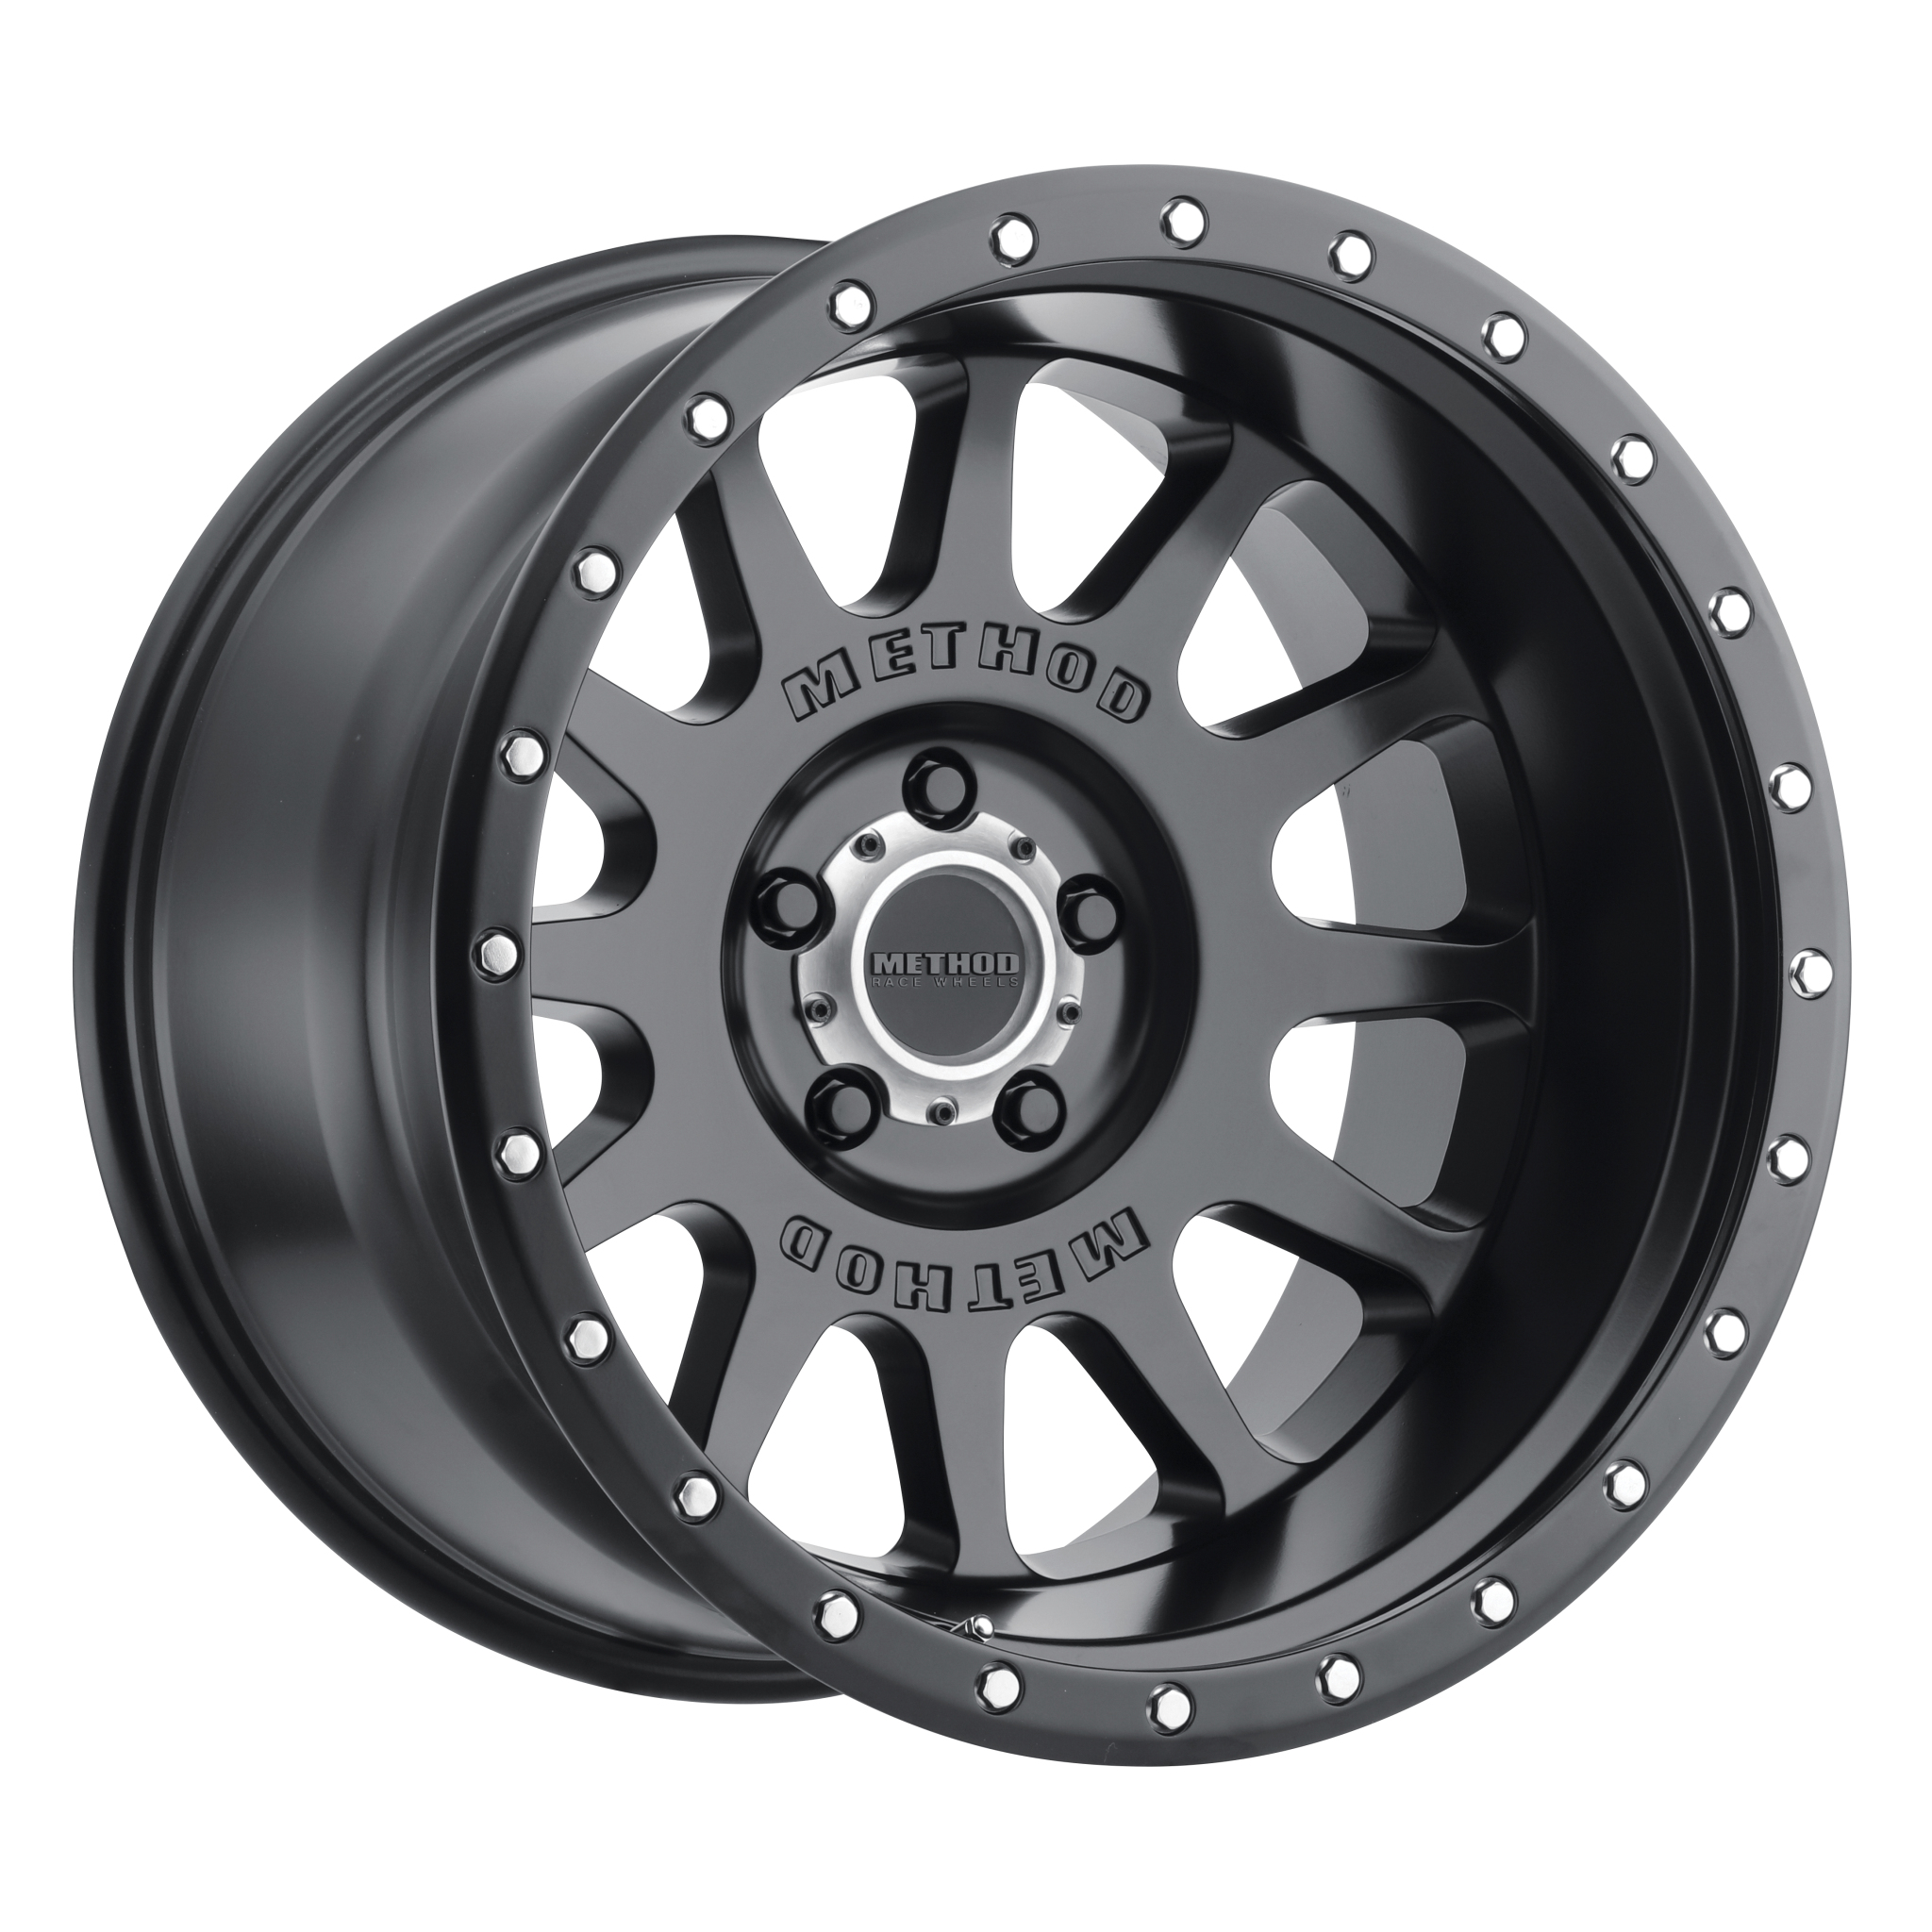 Method 605 NV, 20x9, -12mm Offset, 5x150, 110.5mm Centerbore, Matte Black